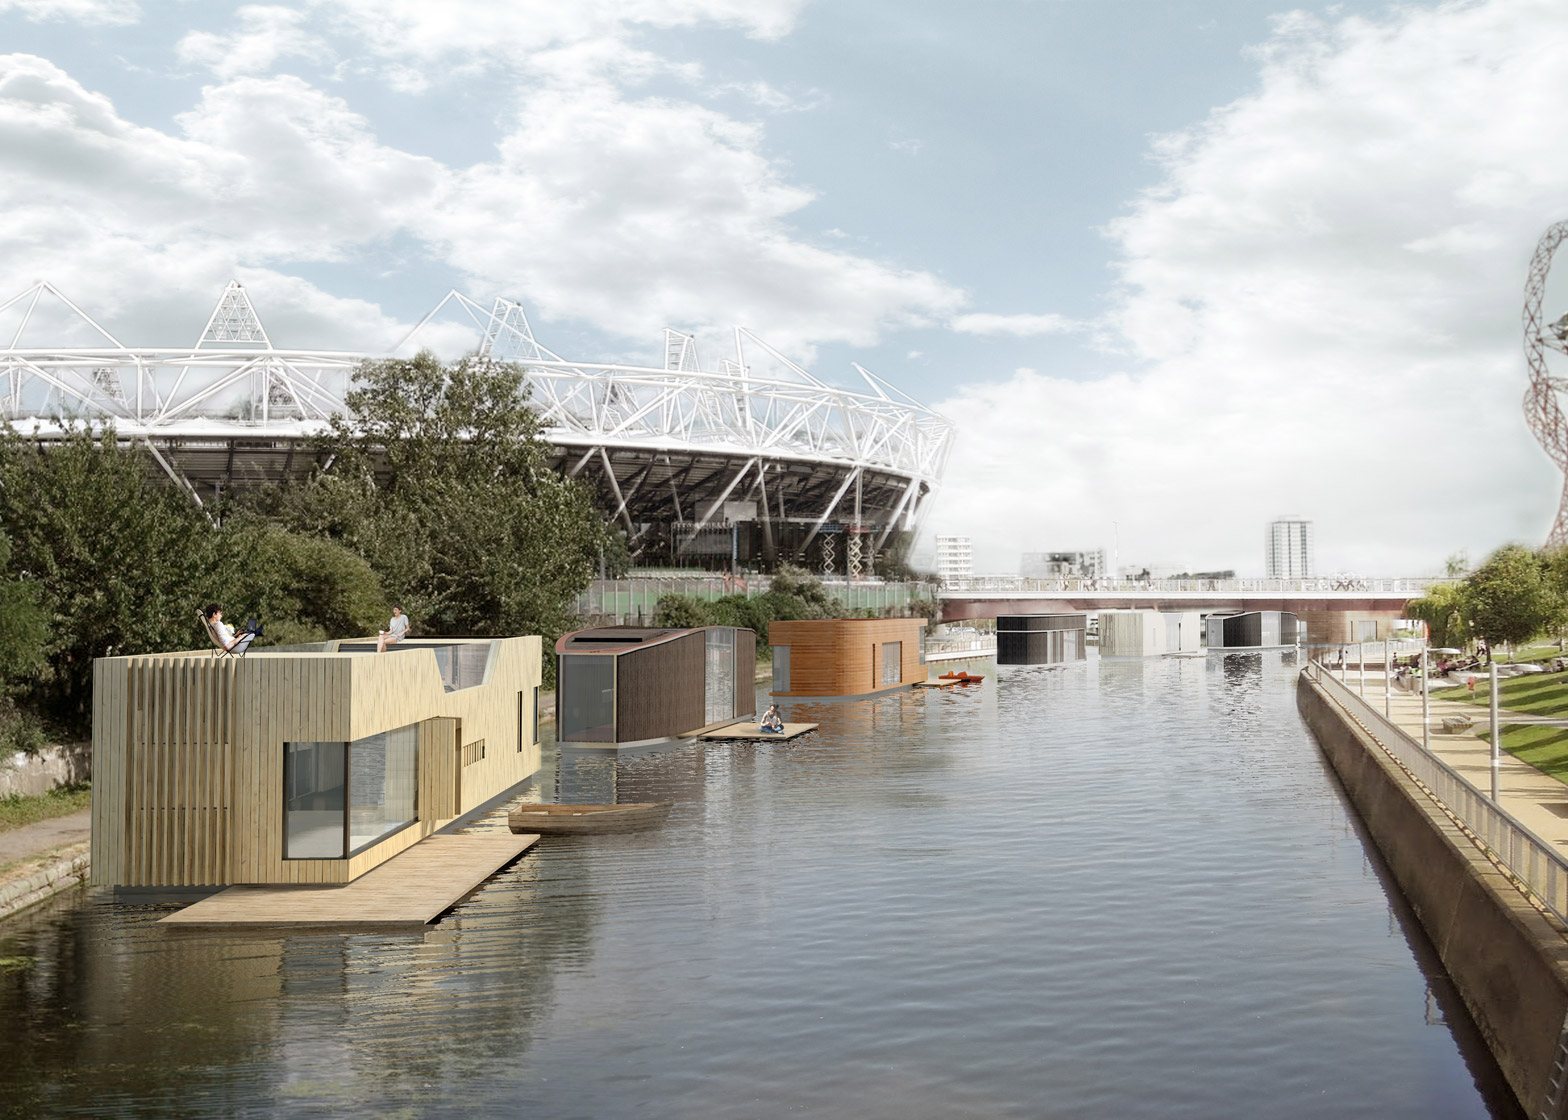 Baca Architects' proposal for prefabricated amphibious housing on London's canals